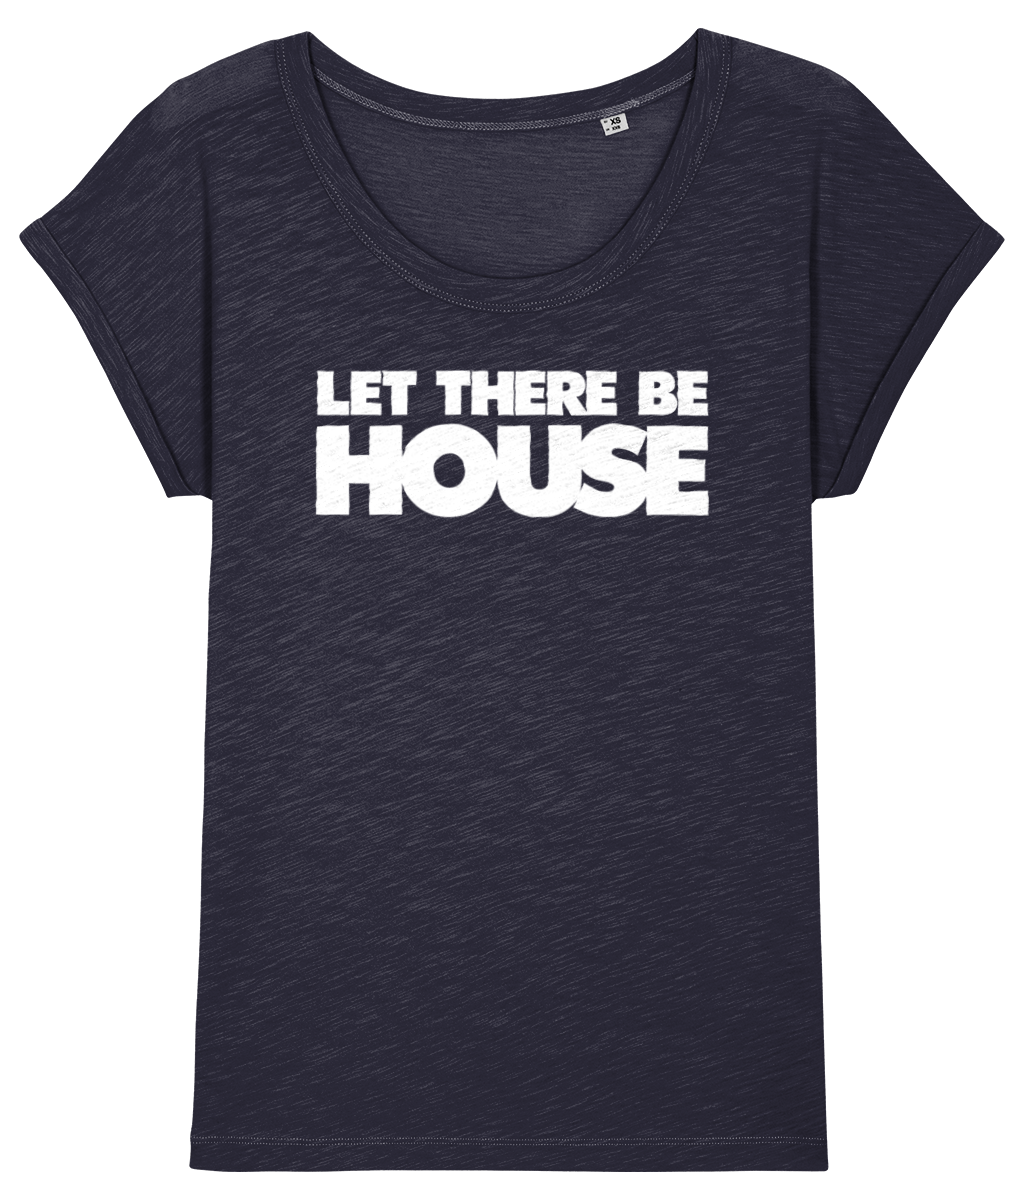 Women's Slub T-Shirt LTBH Words